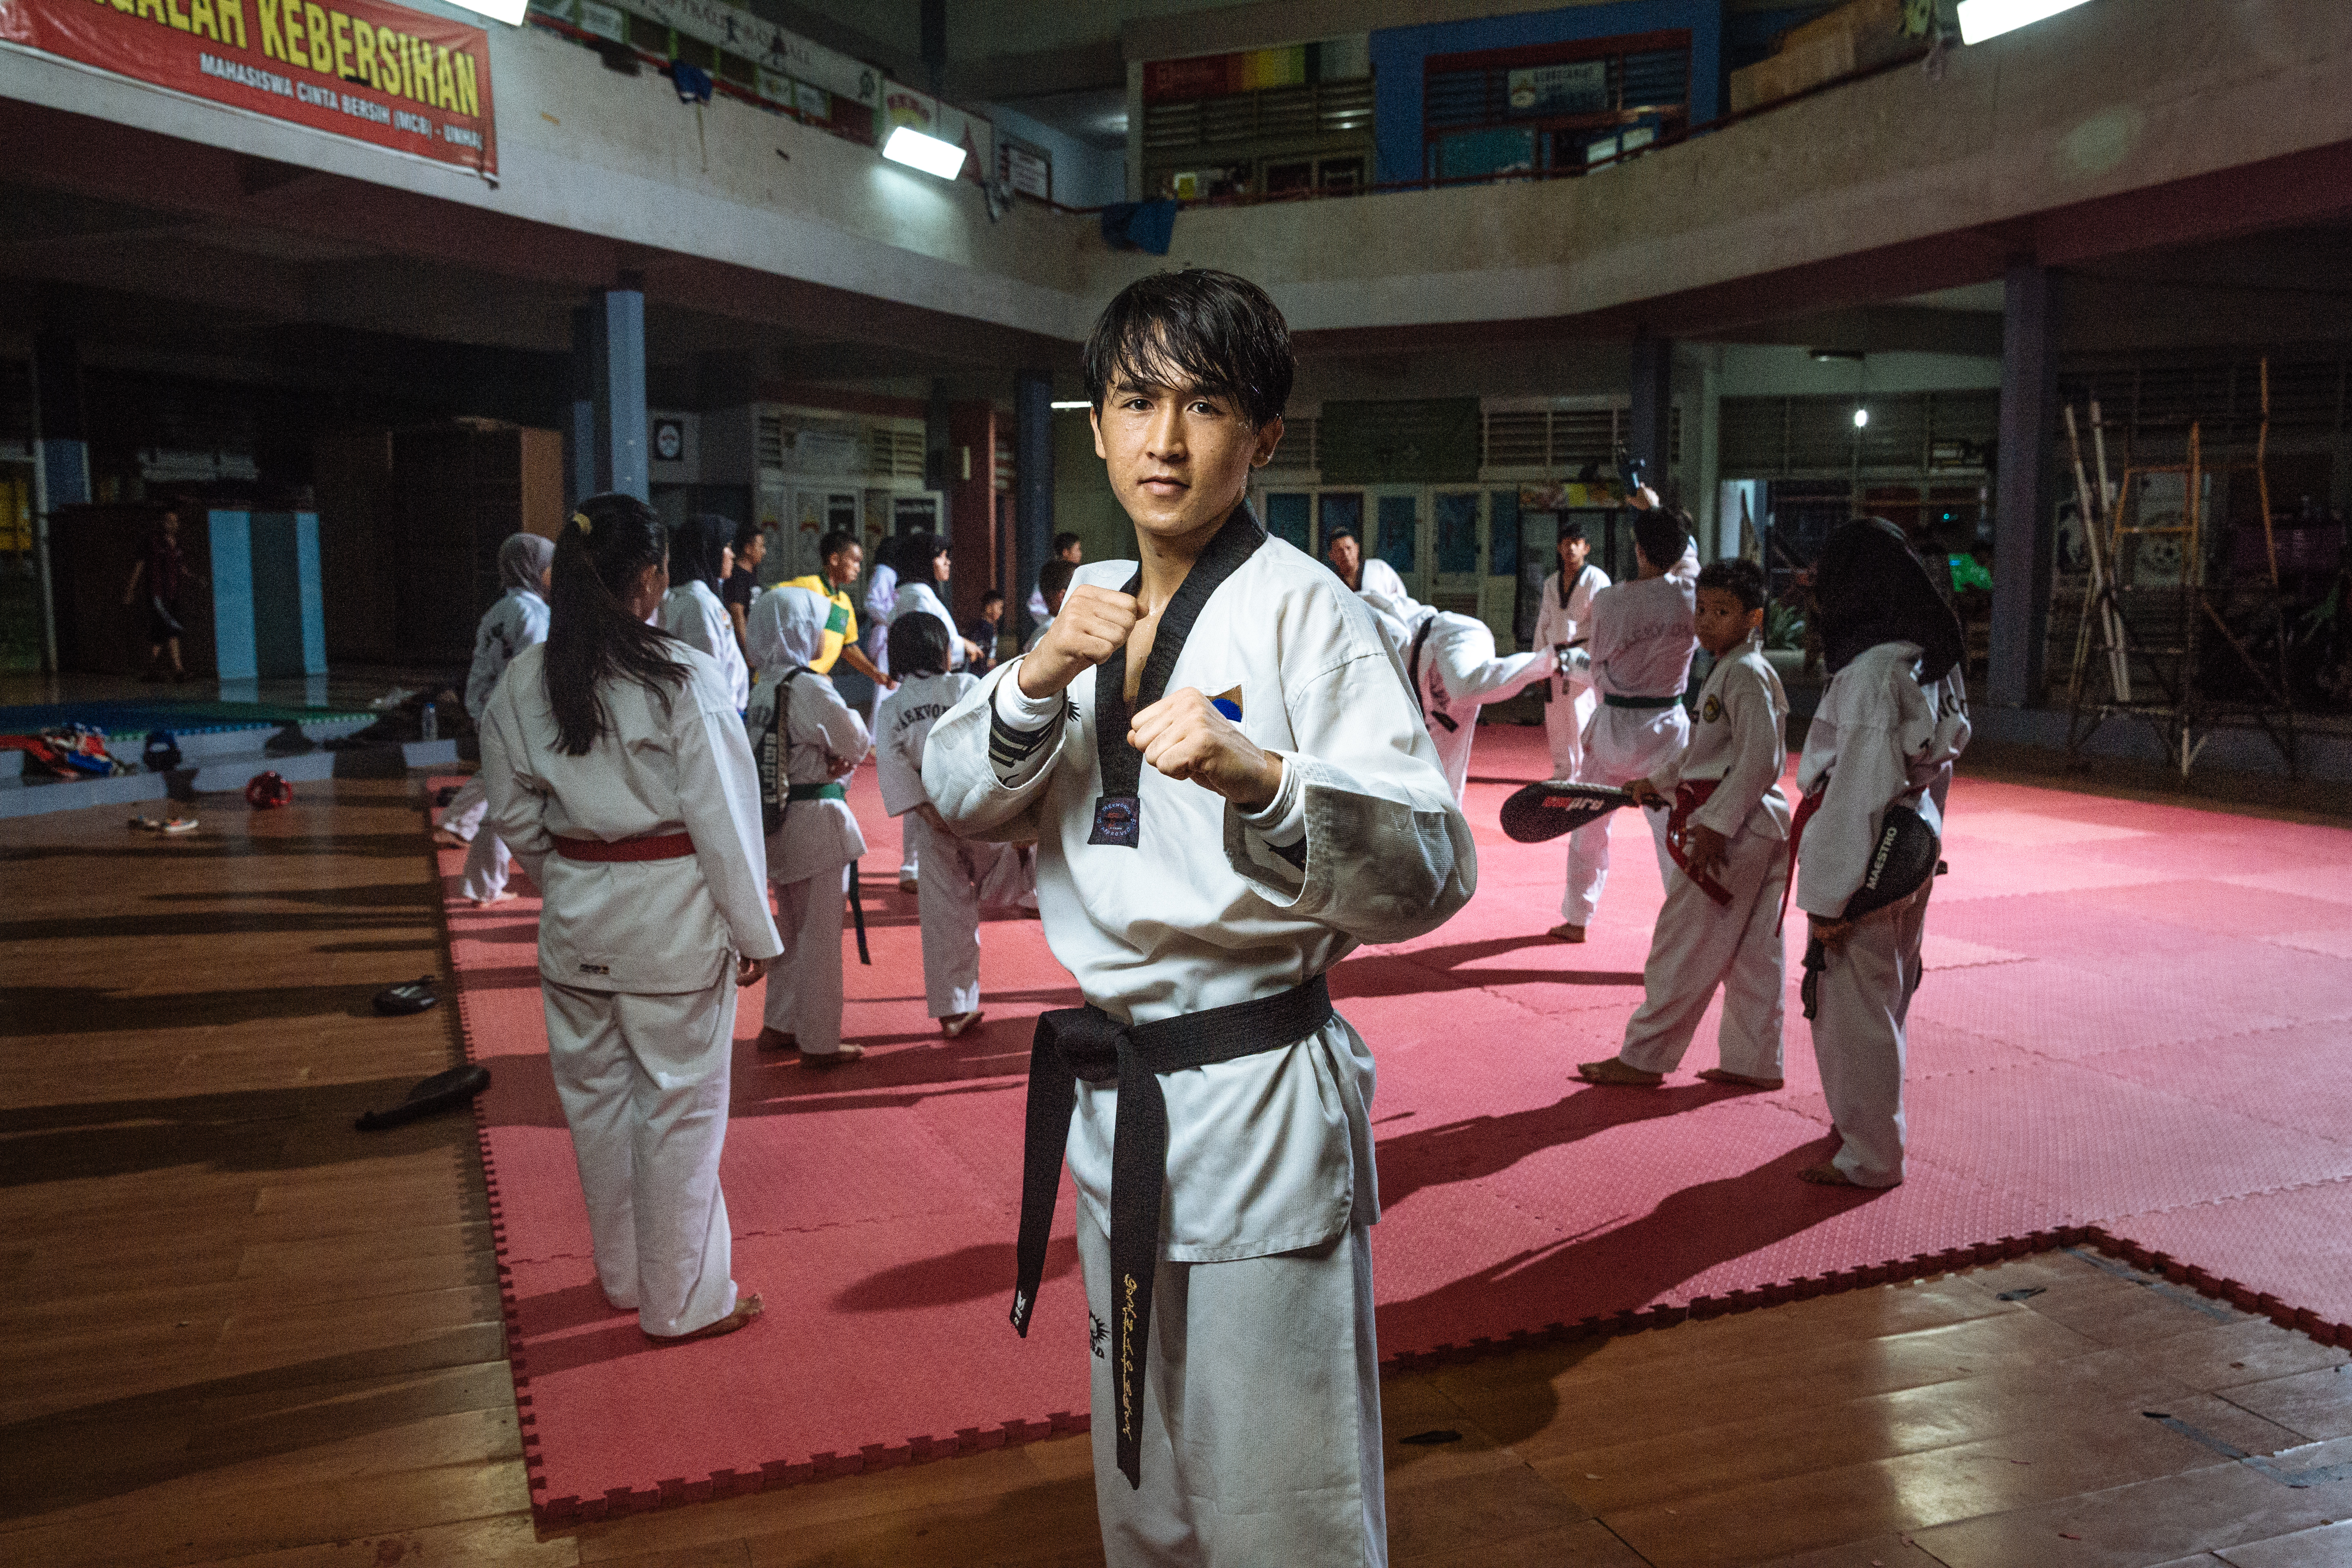 """Osman began training in Taekwondo as a child in Afghanistan, inspired by the example of two-time Olympic bronze medalist Rohullah Nikpai, who is an ethnic Hazara like himself. """"It is not easy being a Hazara in Afghanistan; we are often discriminated against by other ethnic groups and the Taliban who do not see us as 'real' Afghans,"""" he says. """"When I saw Rohullah at the Olympics I felt that anything was possible if I tried hard enough."""""""